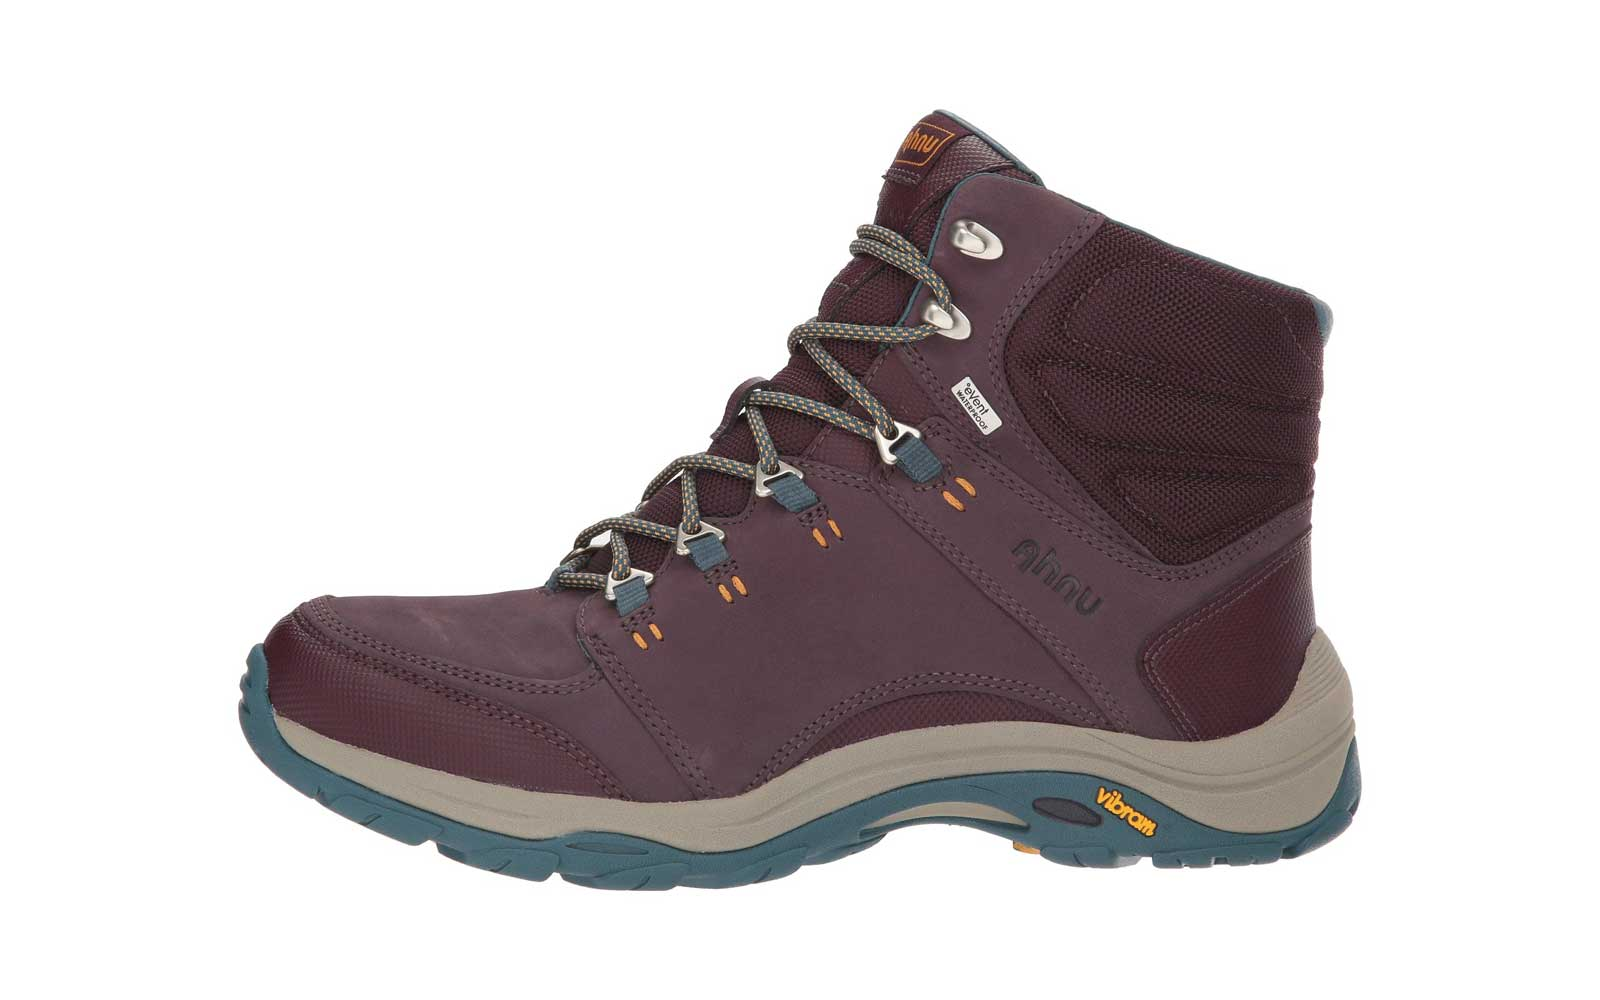 30e643b6705 The 20 Best Hiking Shoes and Boots for Women in 2019 | Travel + Leisure